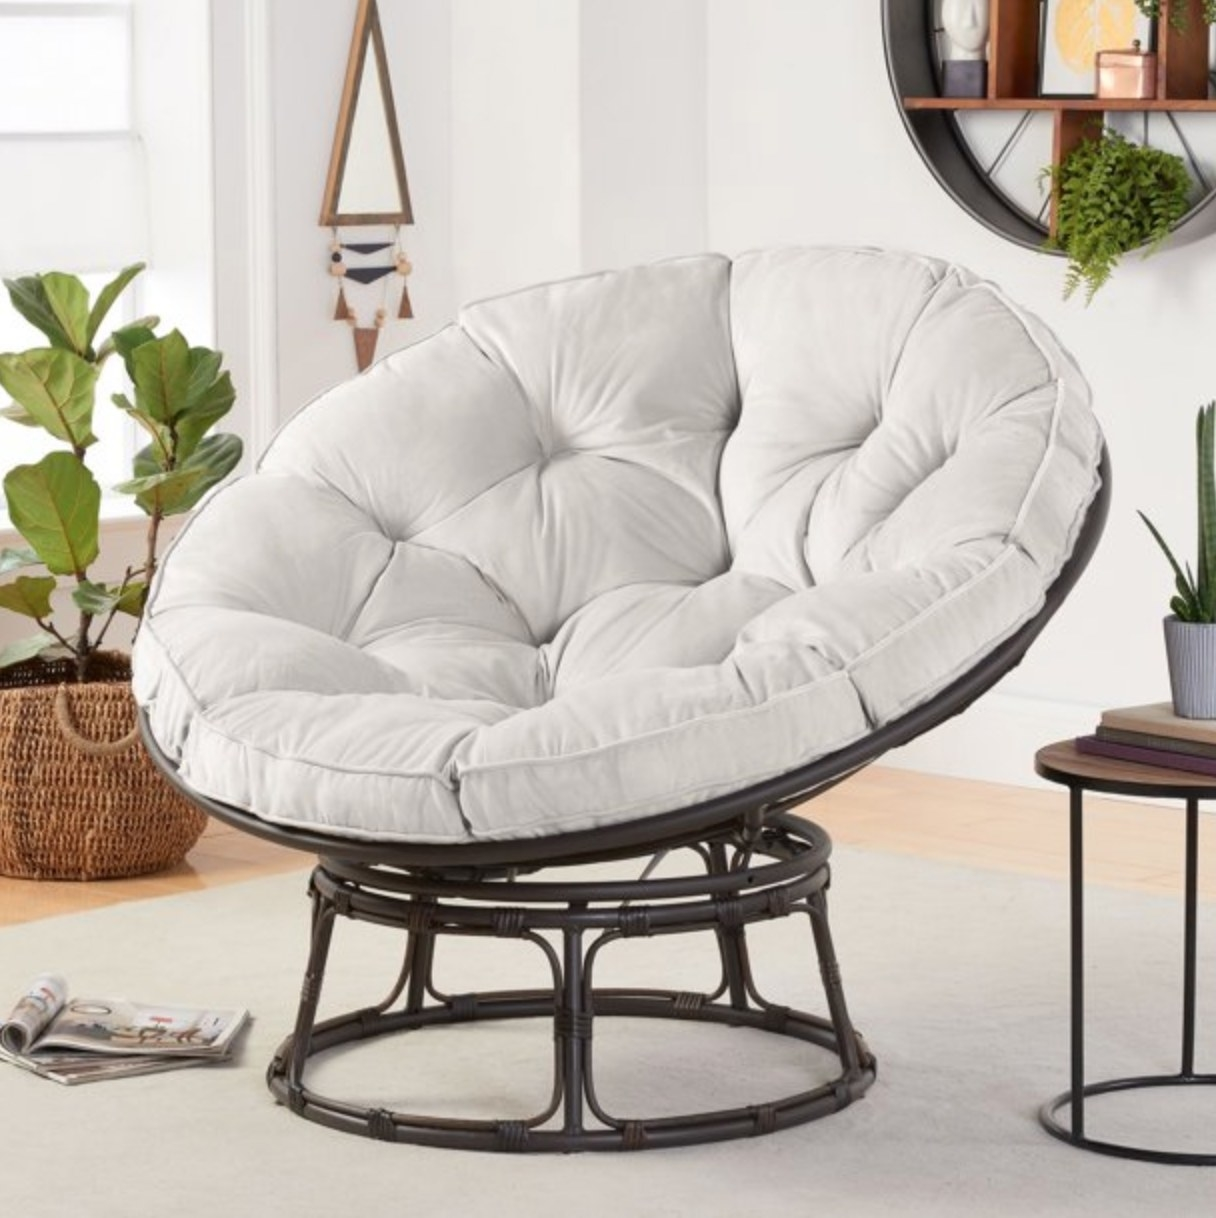 the round fabric chair in pumice gray